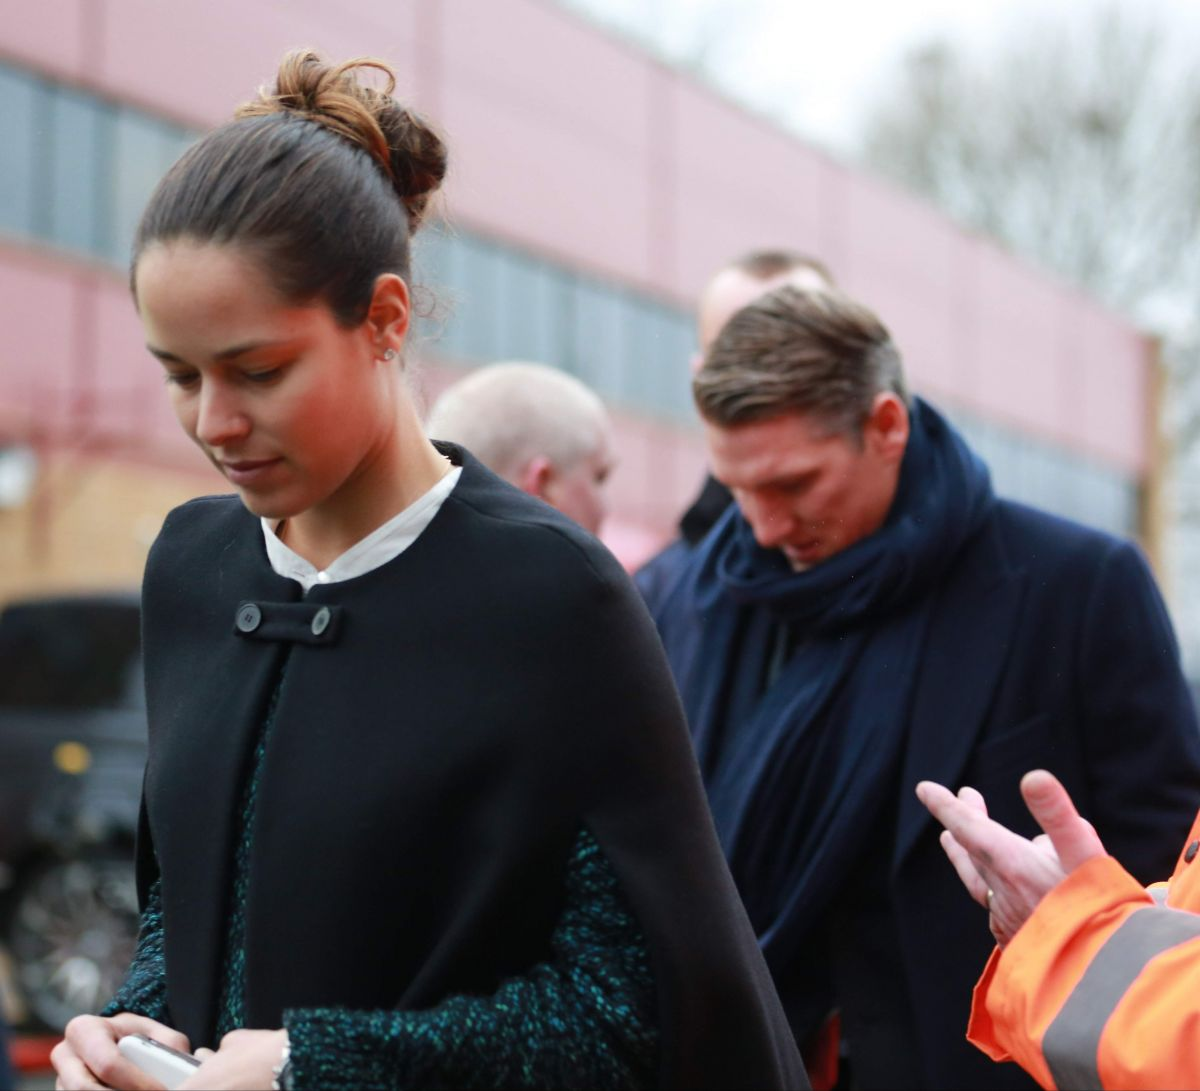 ANA IVANOVIC and Bastian Schweinsteiger Arrives at Old Trafford in Manchester 12/16/2015